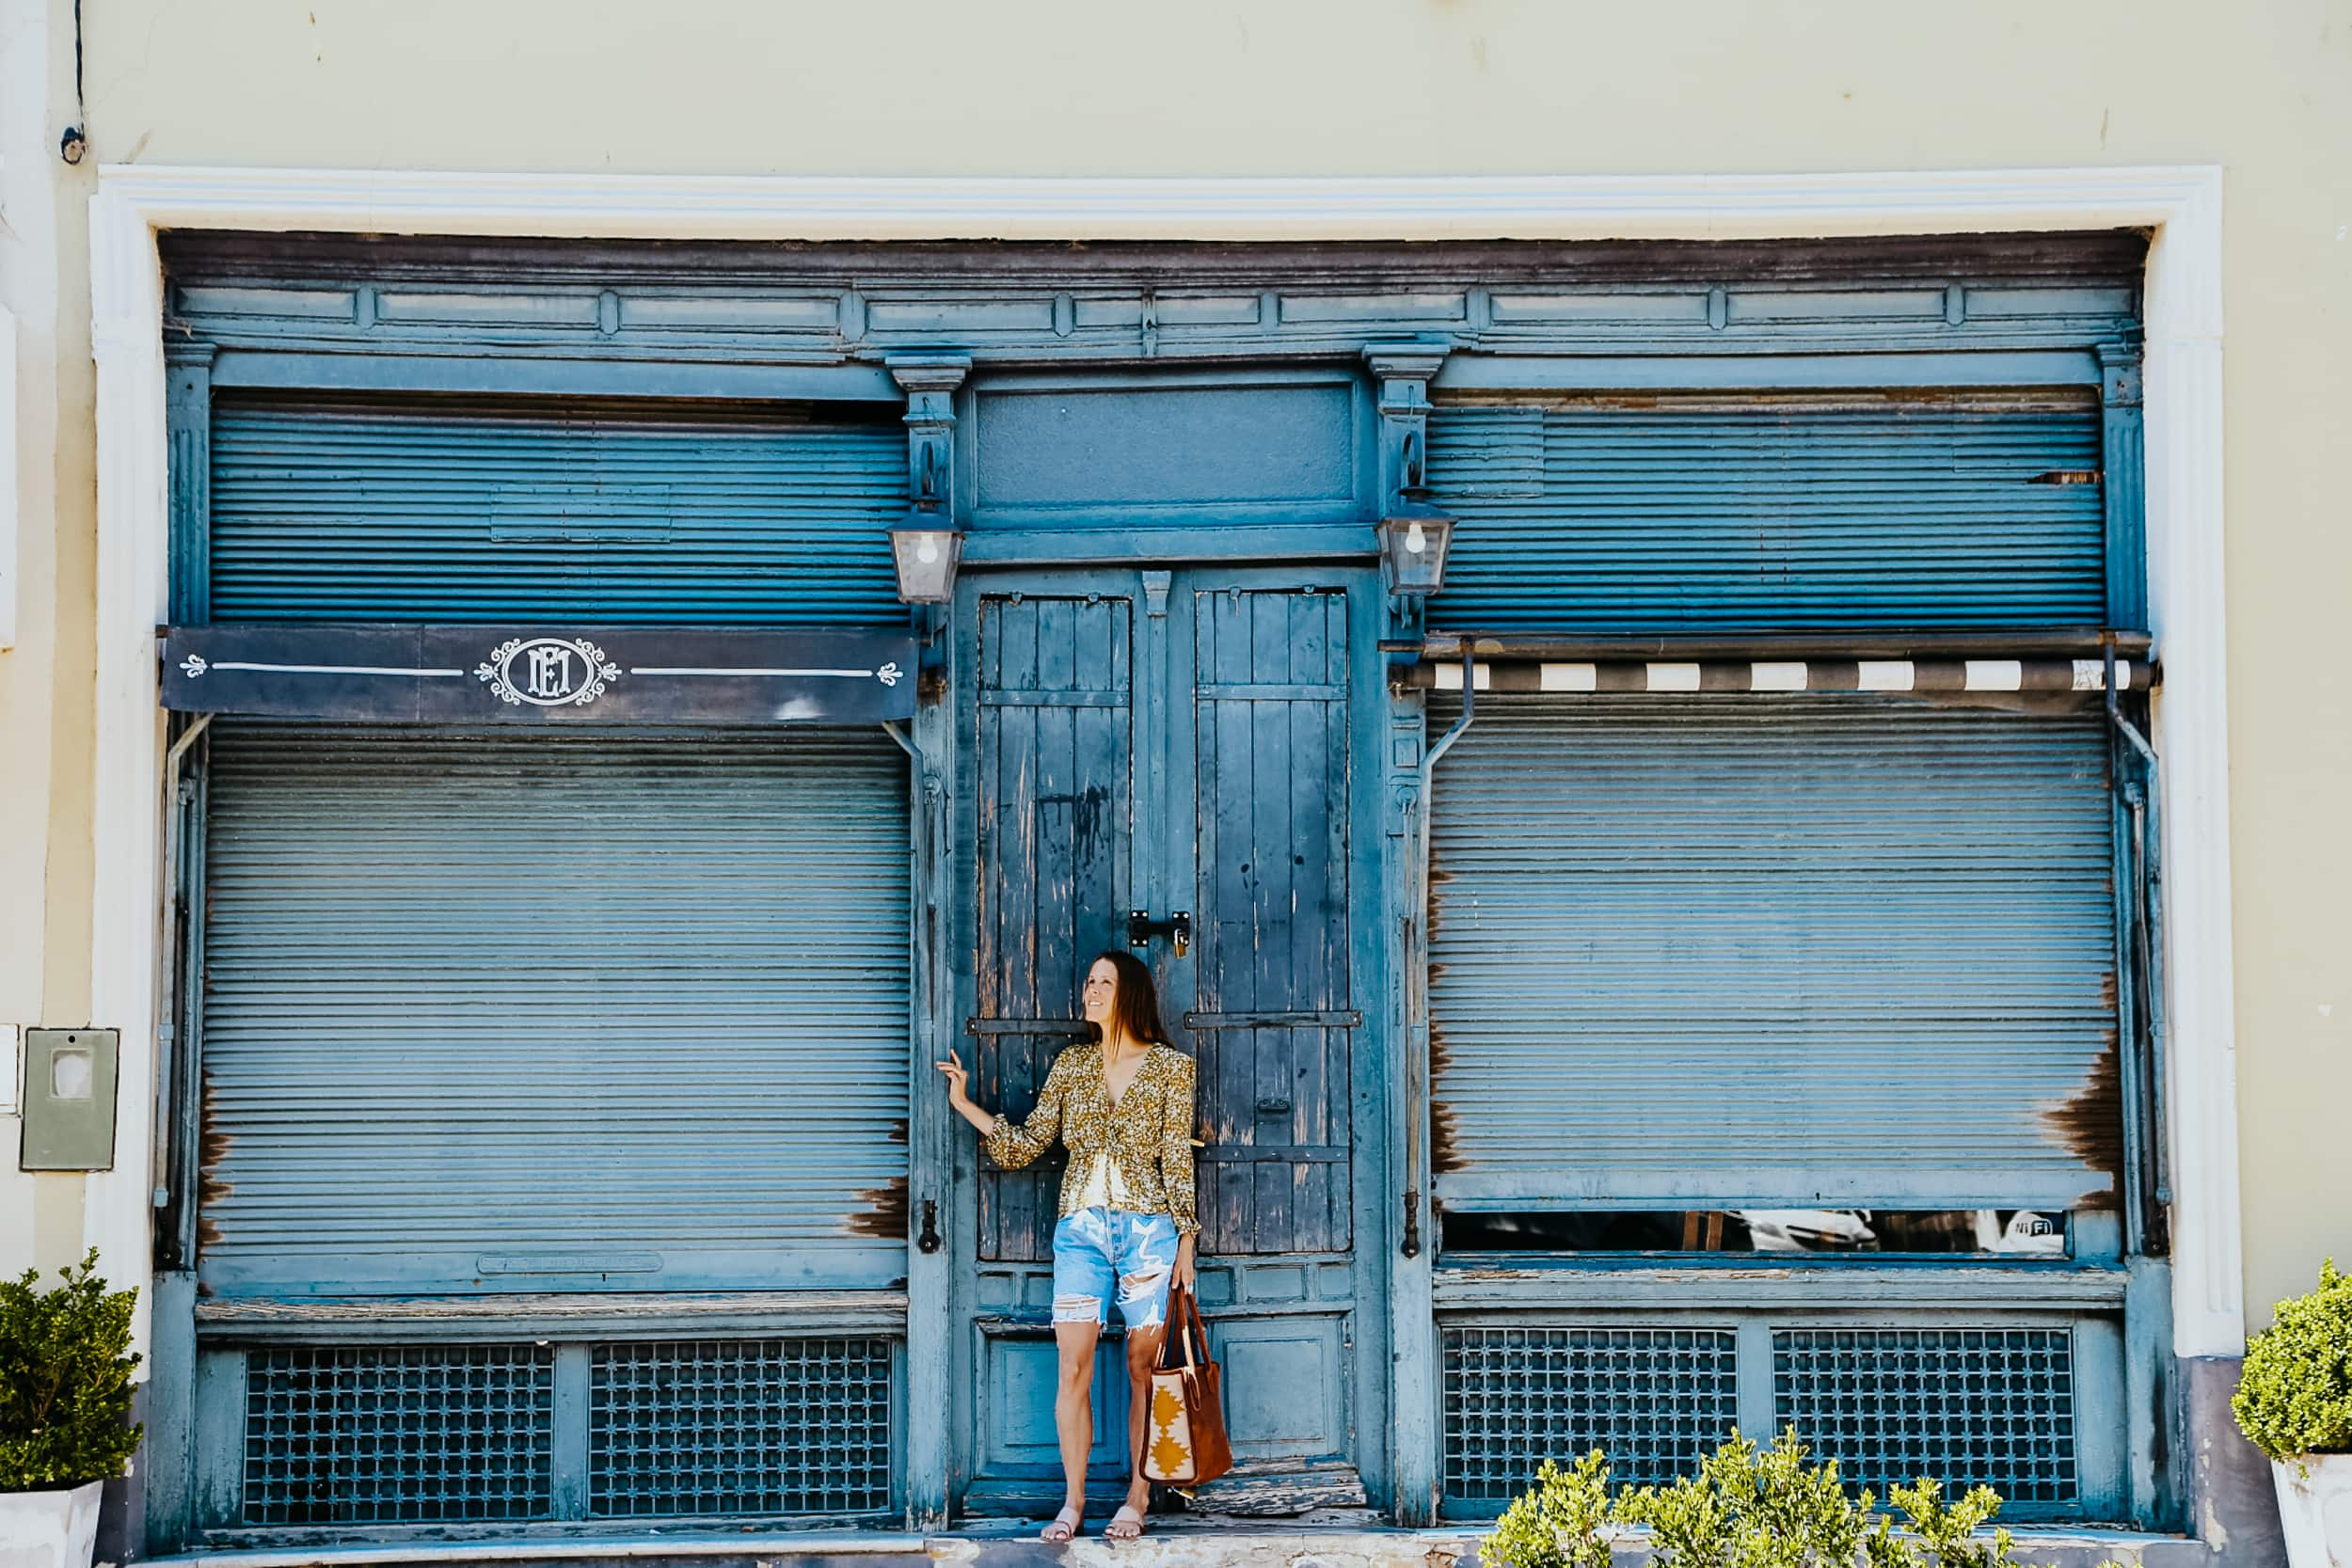 A woman stands in front of a blue door between two windos